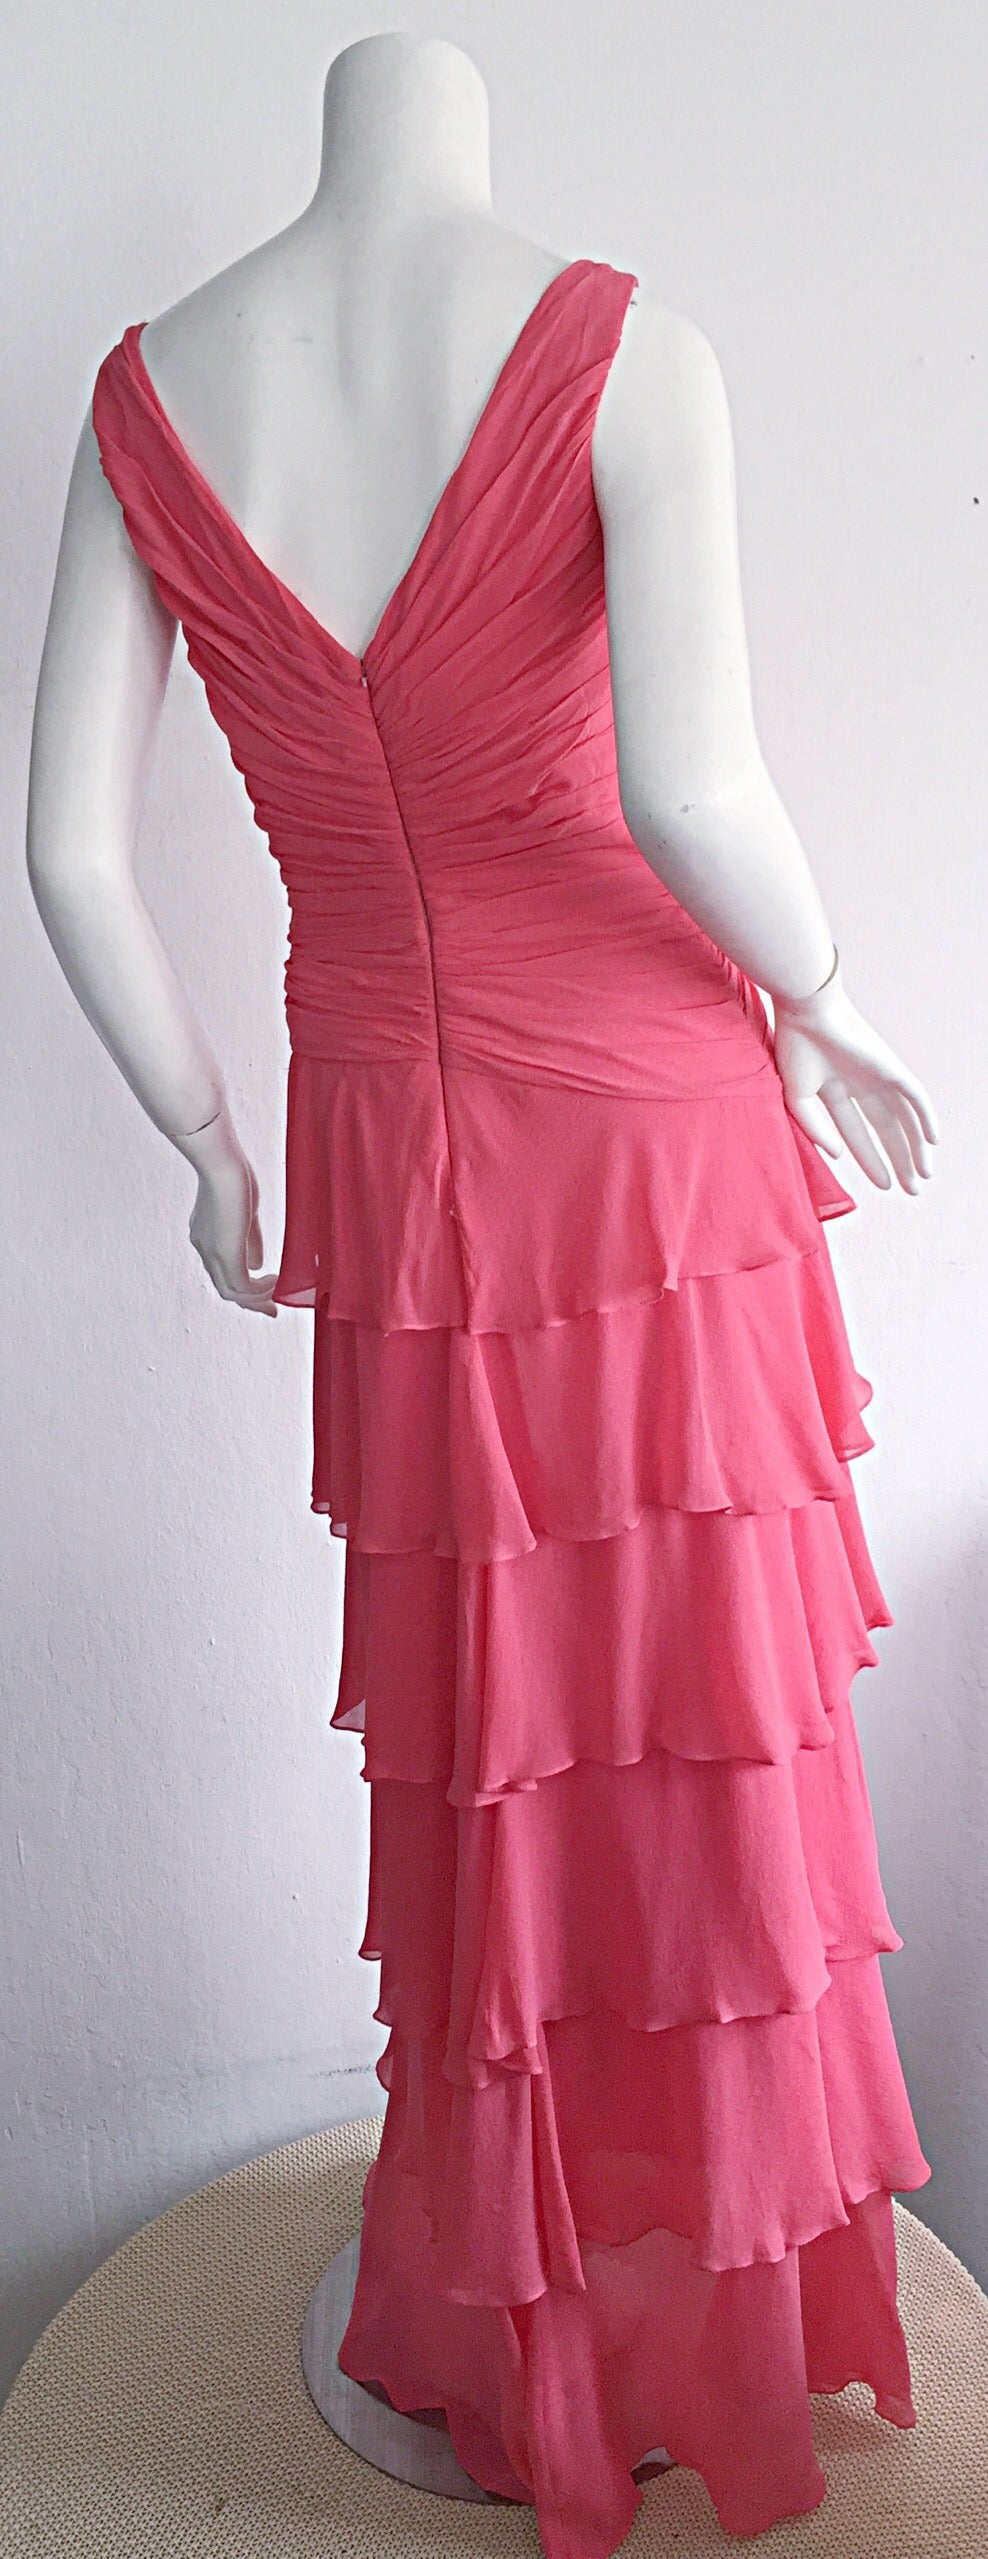 Beautiful 1990s Vintage Tadashi Shoji Pink Silk Chiffon Tiered Dress For Sale 2